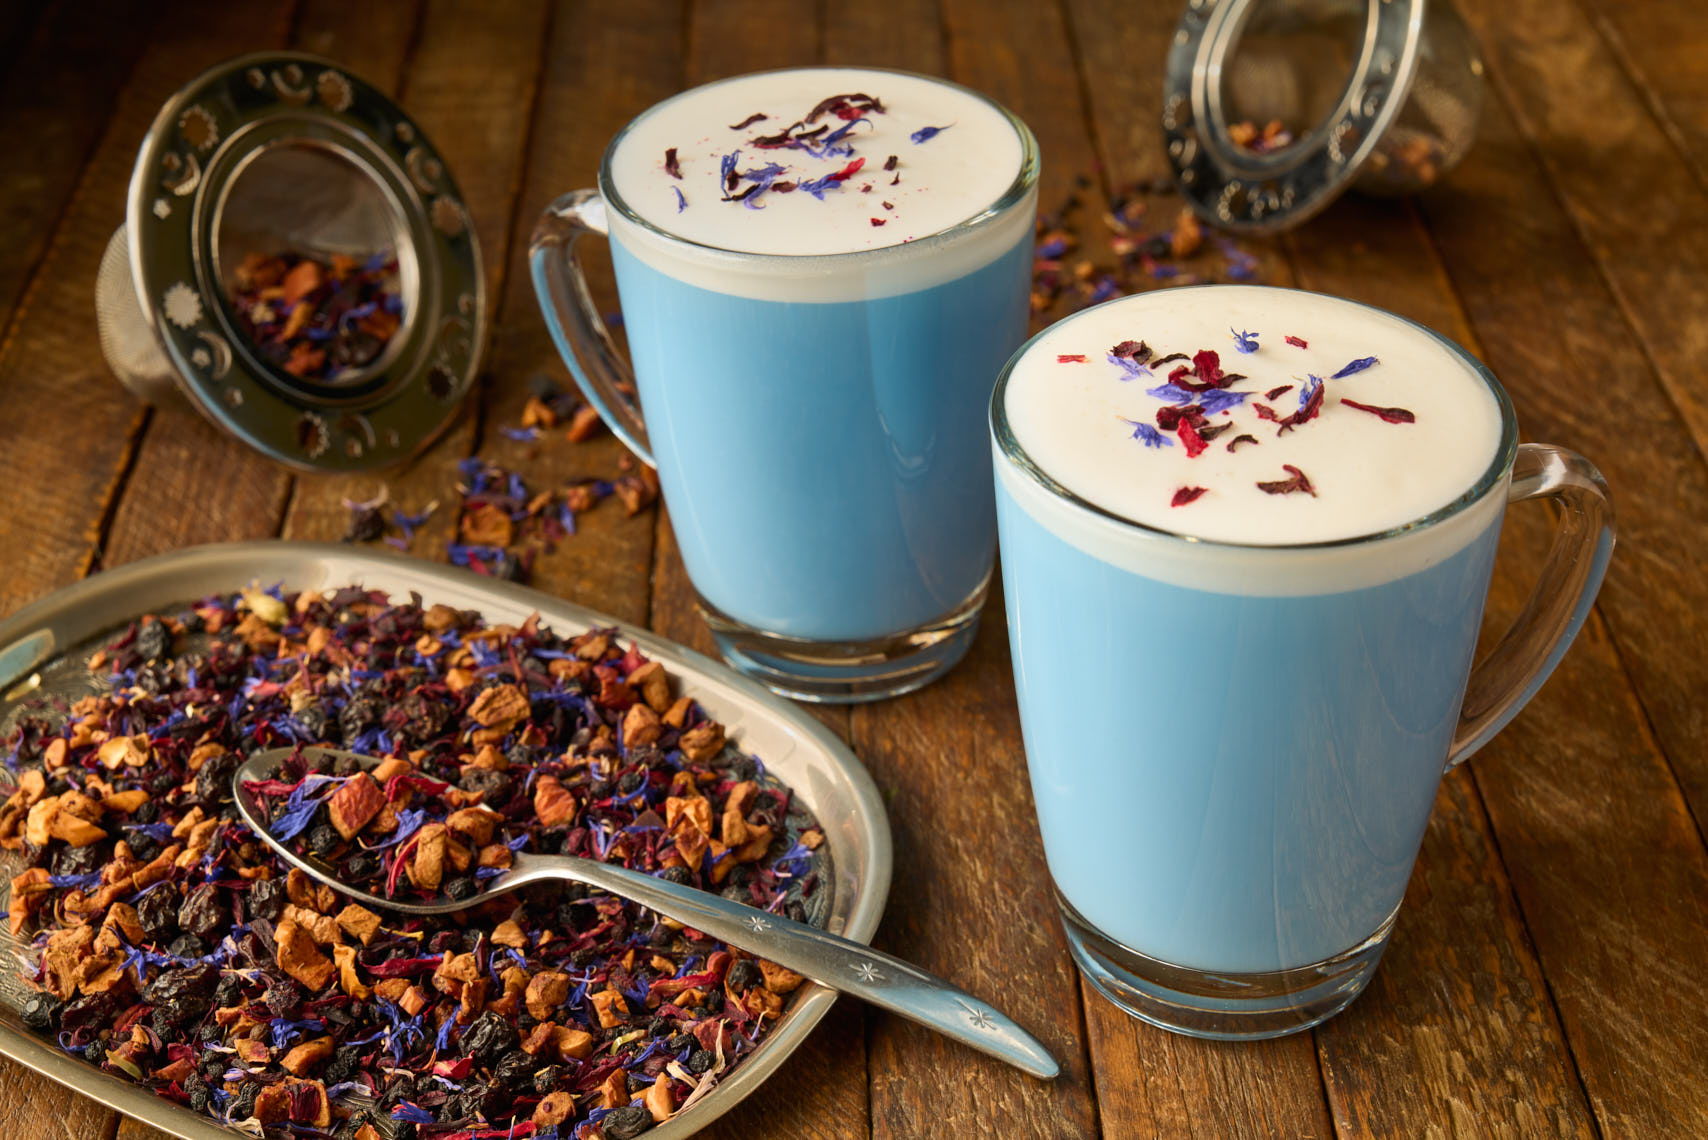 Butterfly Pea Flower Tea - Beverage Photographer - Philadelphia, PA & NJ